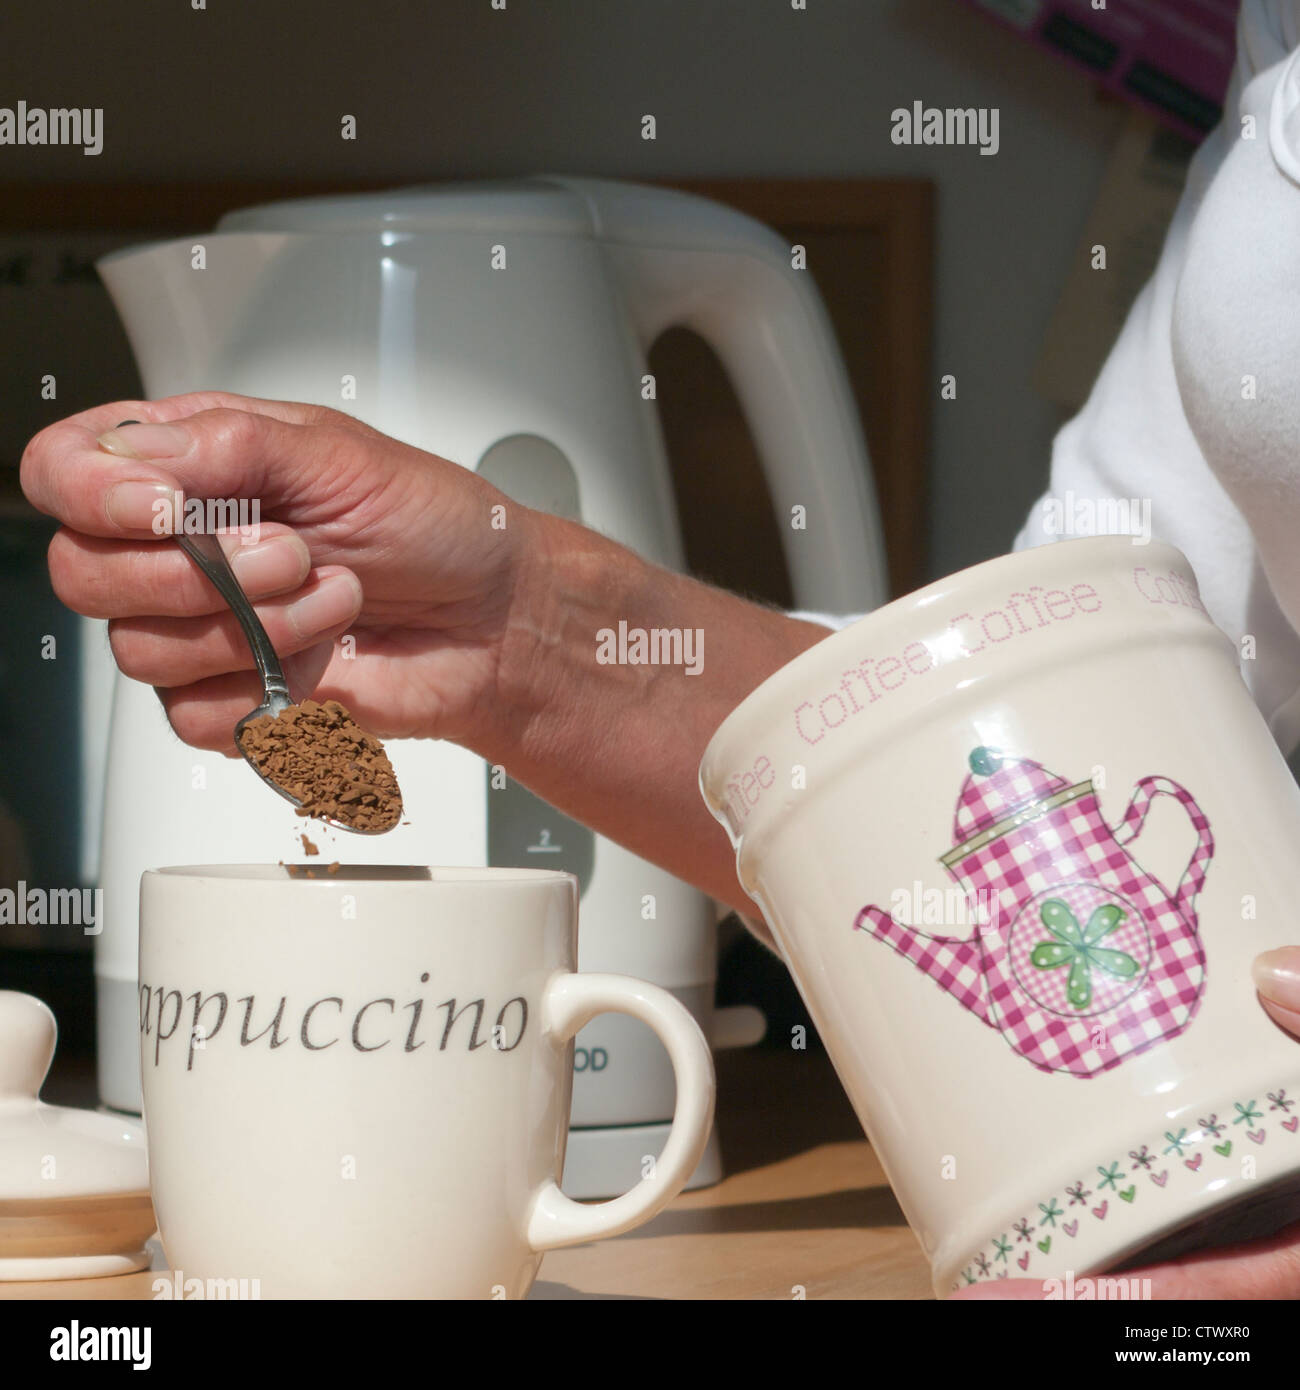 Woman Person Making A Cup Of Coffee Putting A Teaspoon Spoonful Of